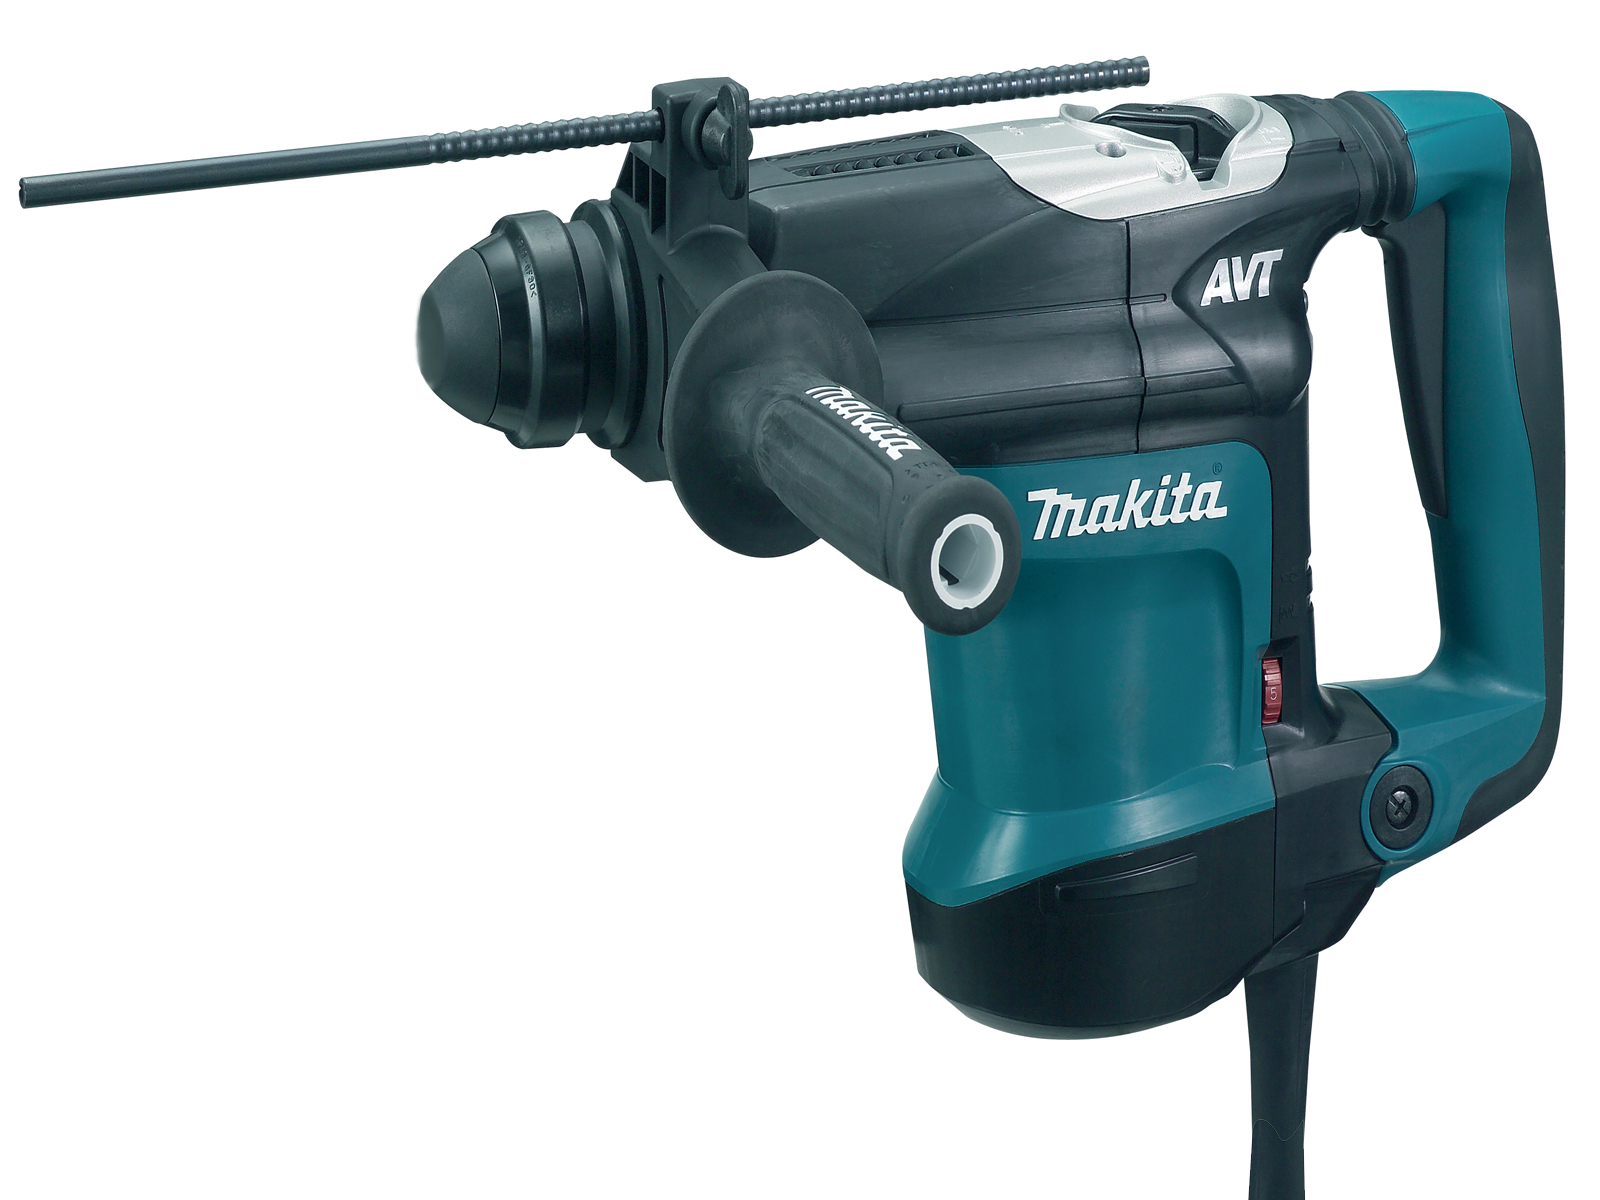 Makita HR3210C 240V 32mm SDS-Plus Rotary Hammer Drill 32mm 3-Mode